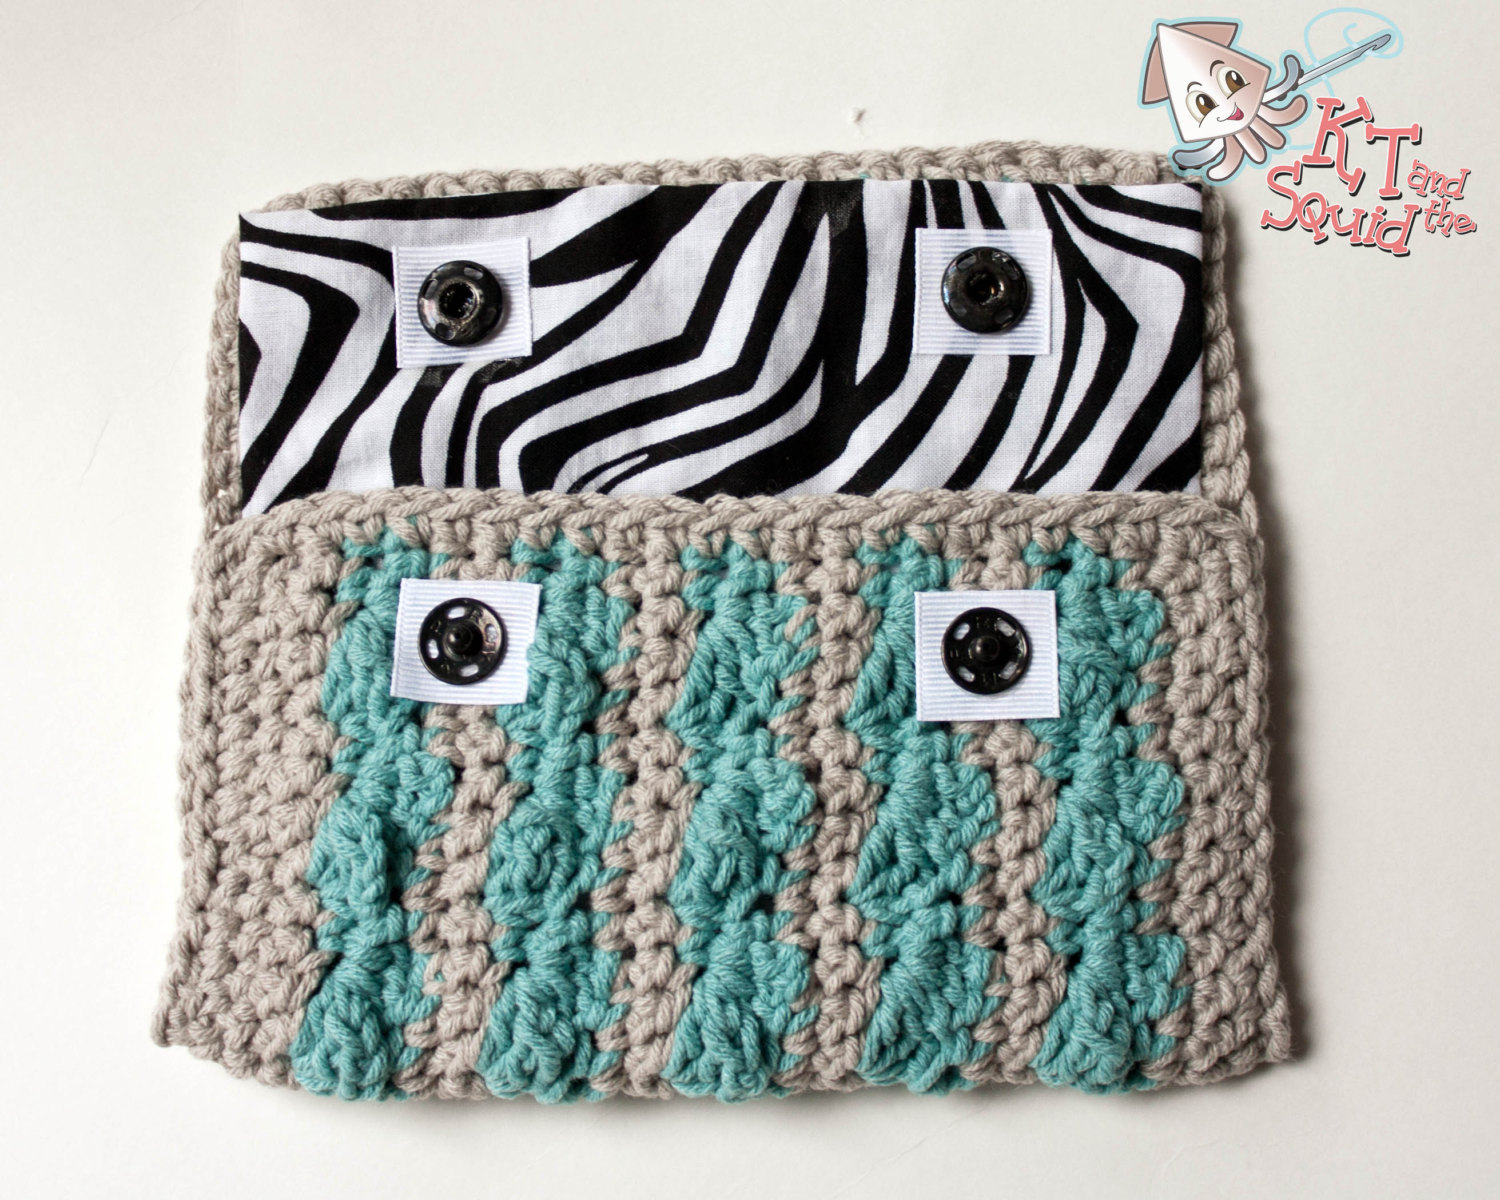 Pink Turquoise Knitted Coin Purse Wallet